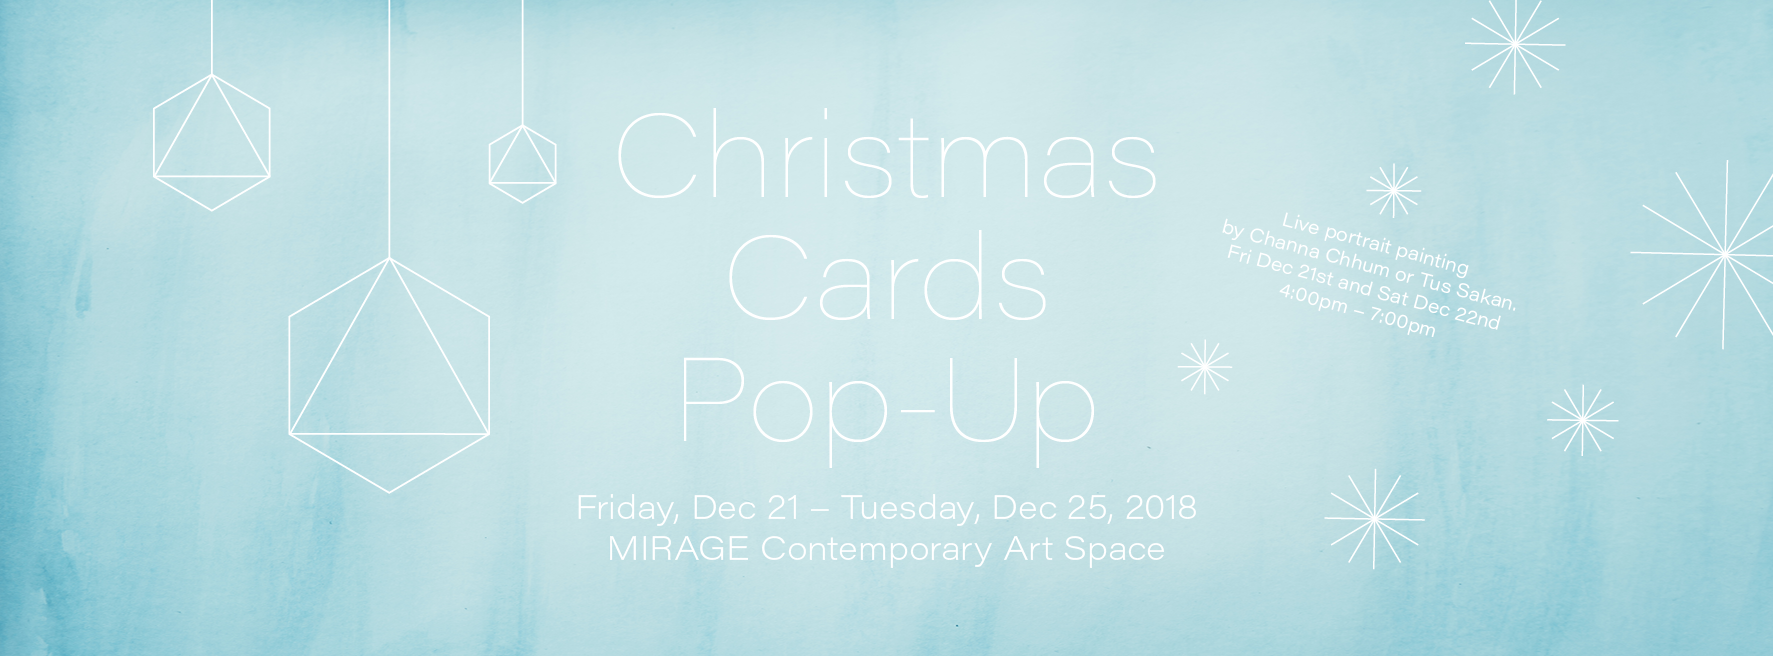 Christmas Cards Pop Up at MIRAGE Contemporary Art Space in Siem Reap, Cambodia